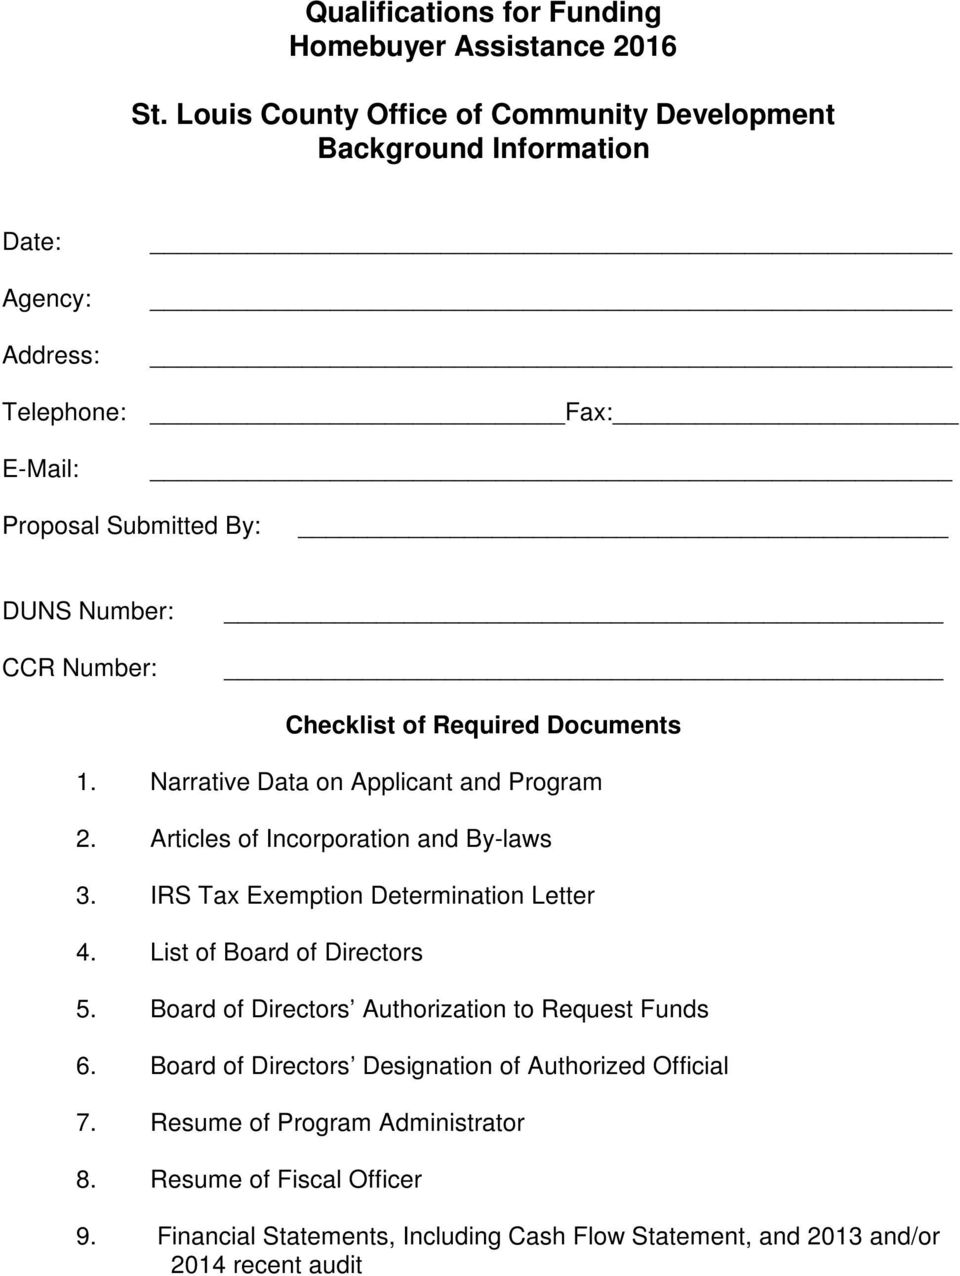 Checklist of Required Documents 1. Narrative Data on Applicant and Program 2. Articles of Incorporation and By-laws 3. IRS Tax Exemption Determination Letter 4.